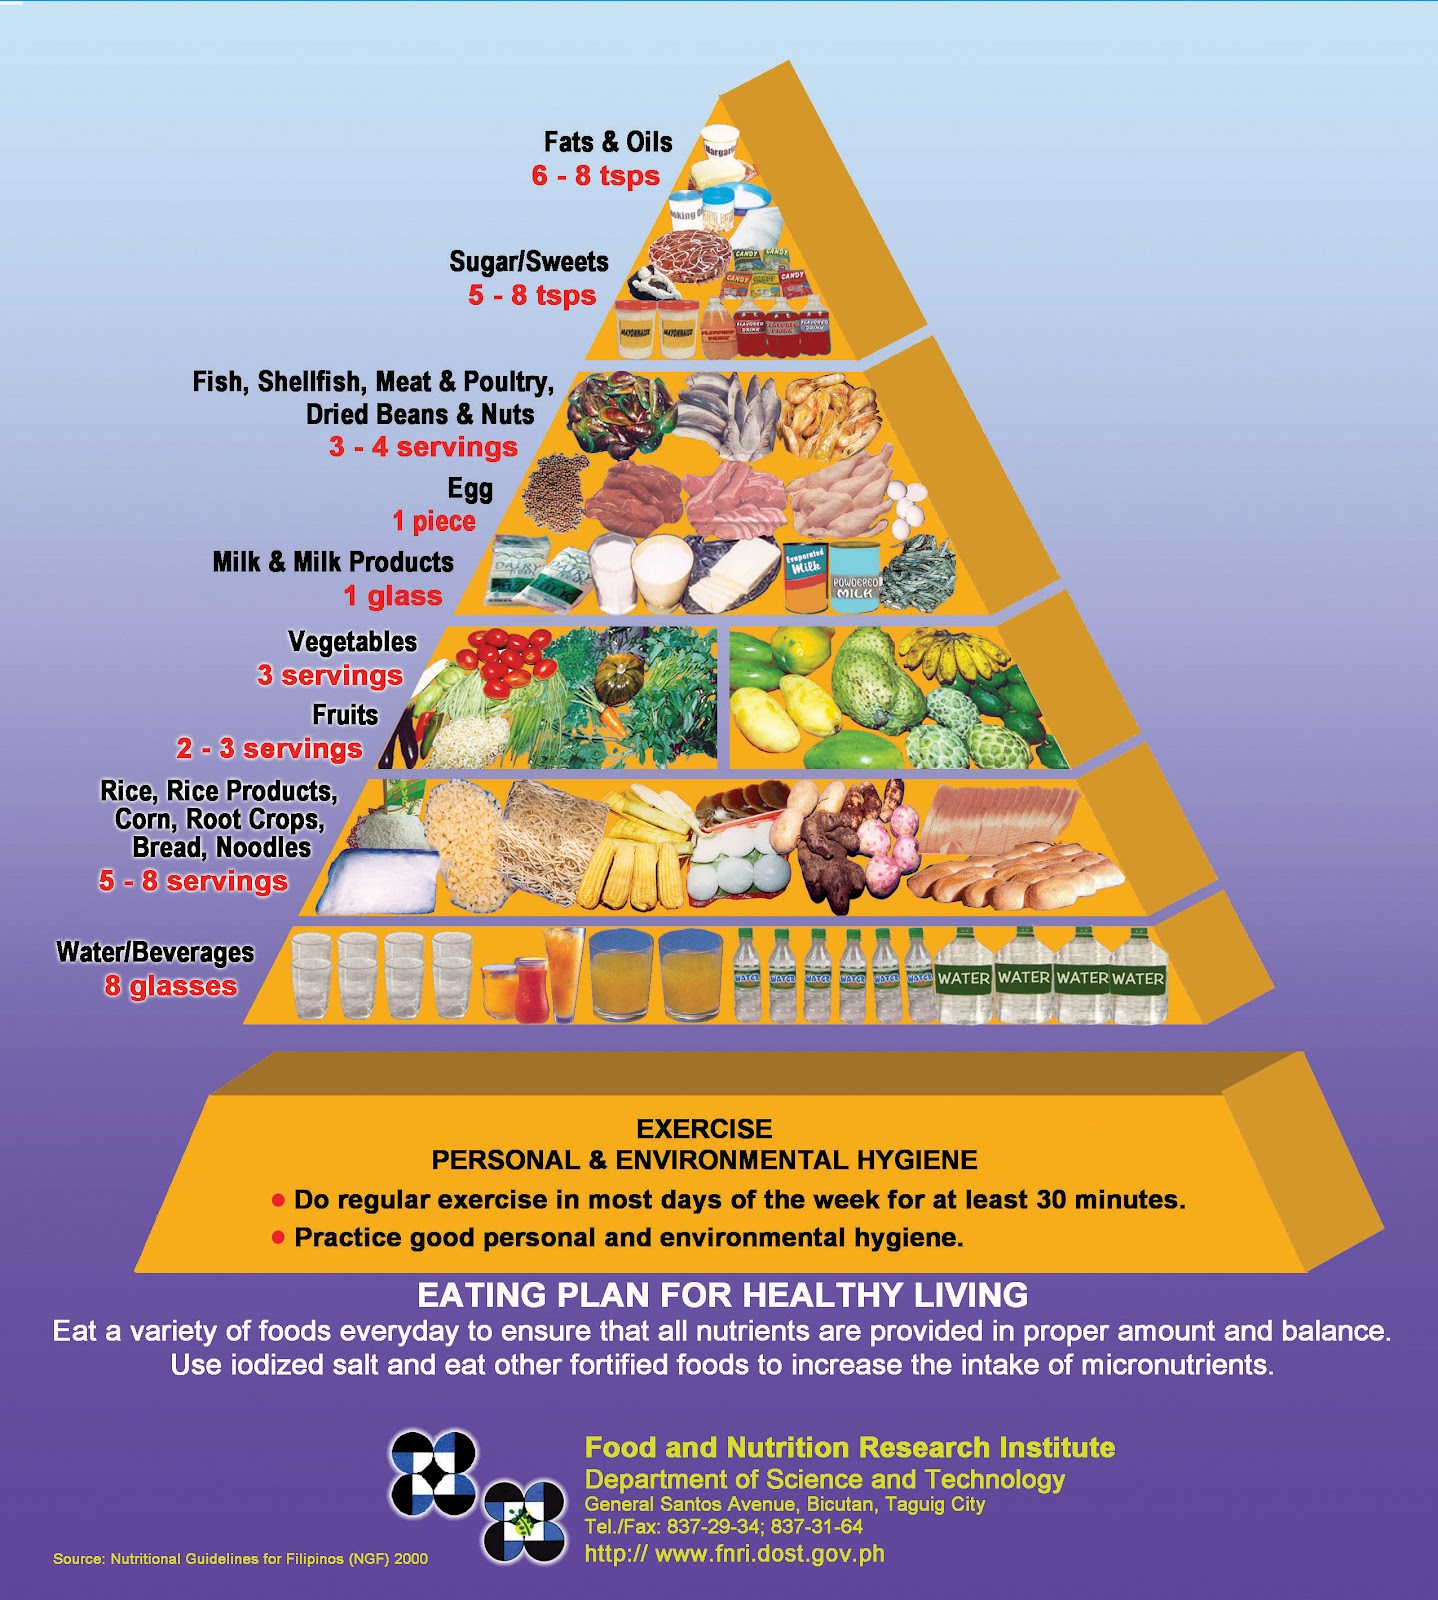 Food guide Pyramid for Vegetarians: Article analysis Essay ...